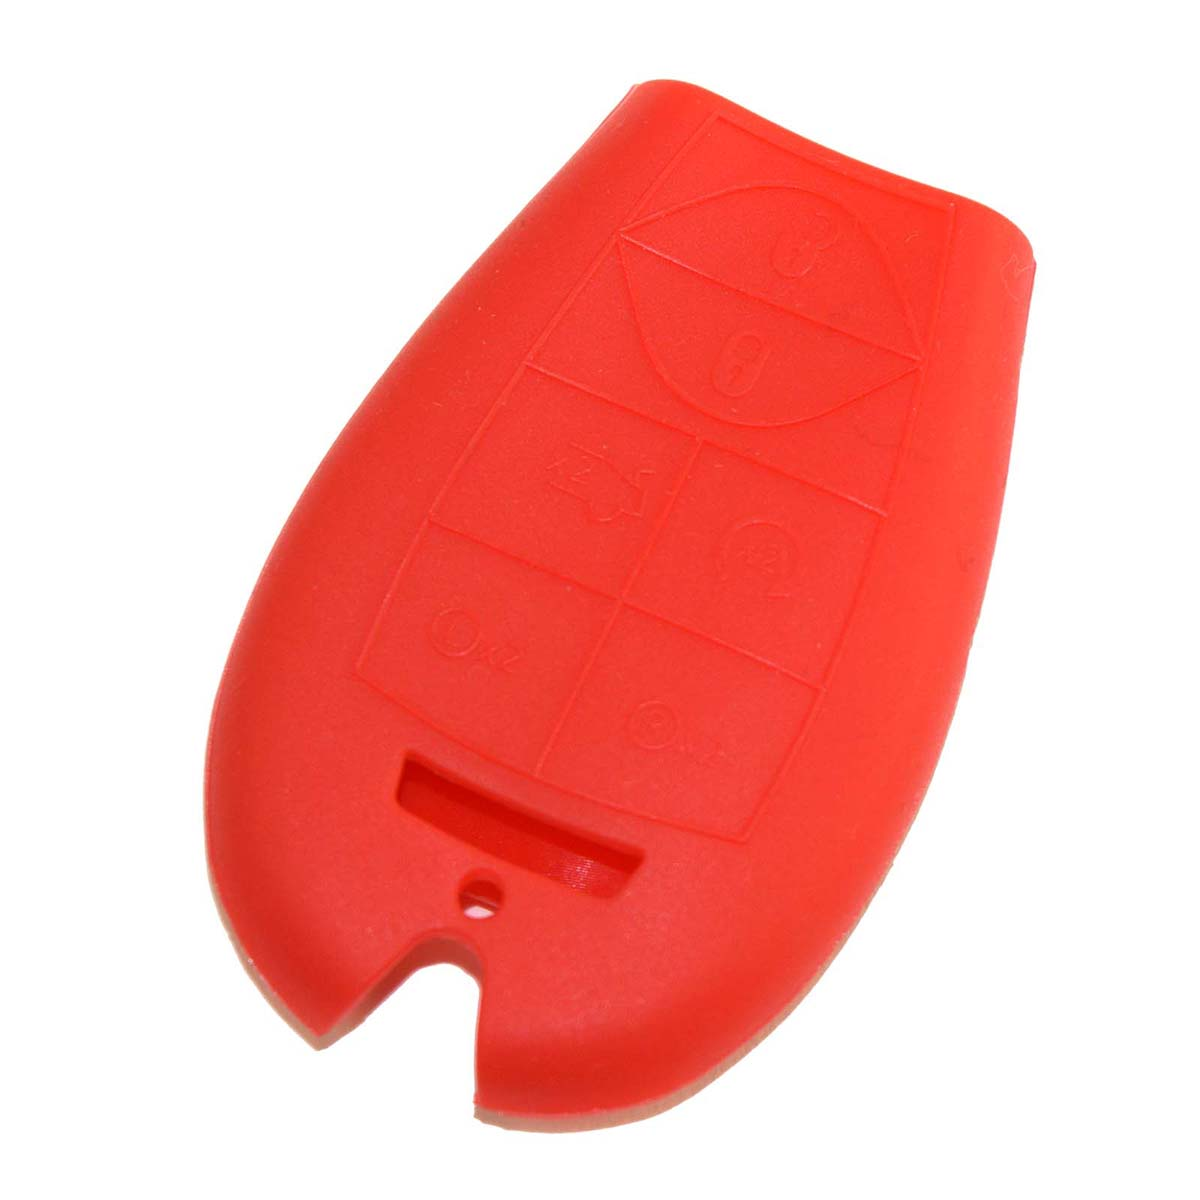 Chrysler Town And Country Silicone Rubber Remote Cover